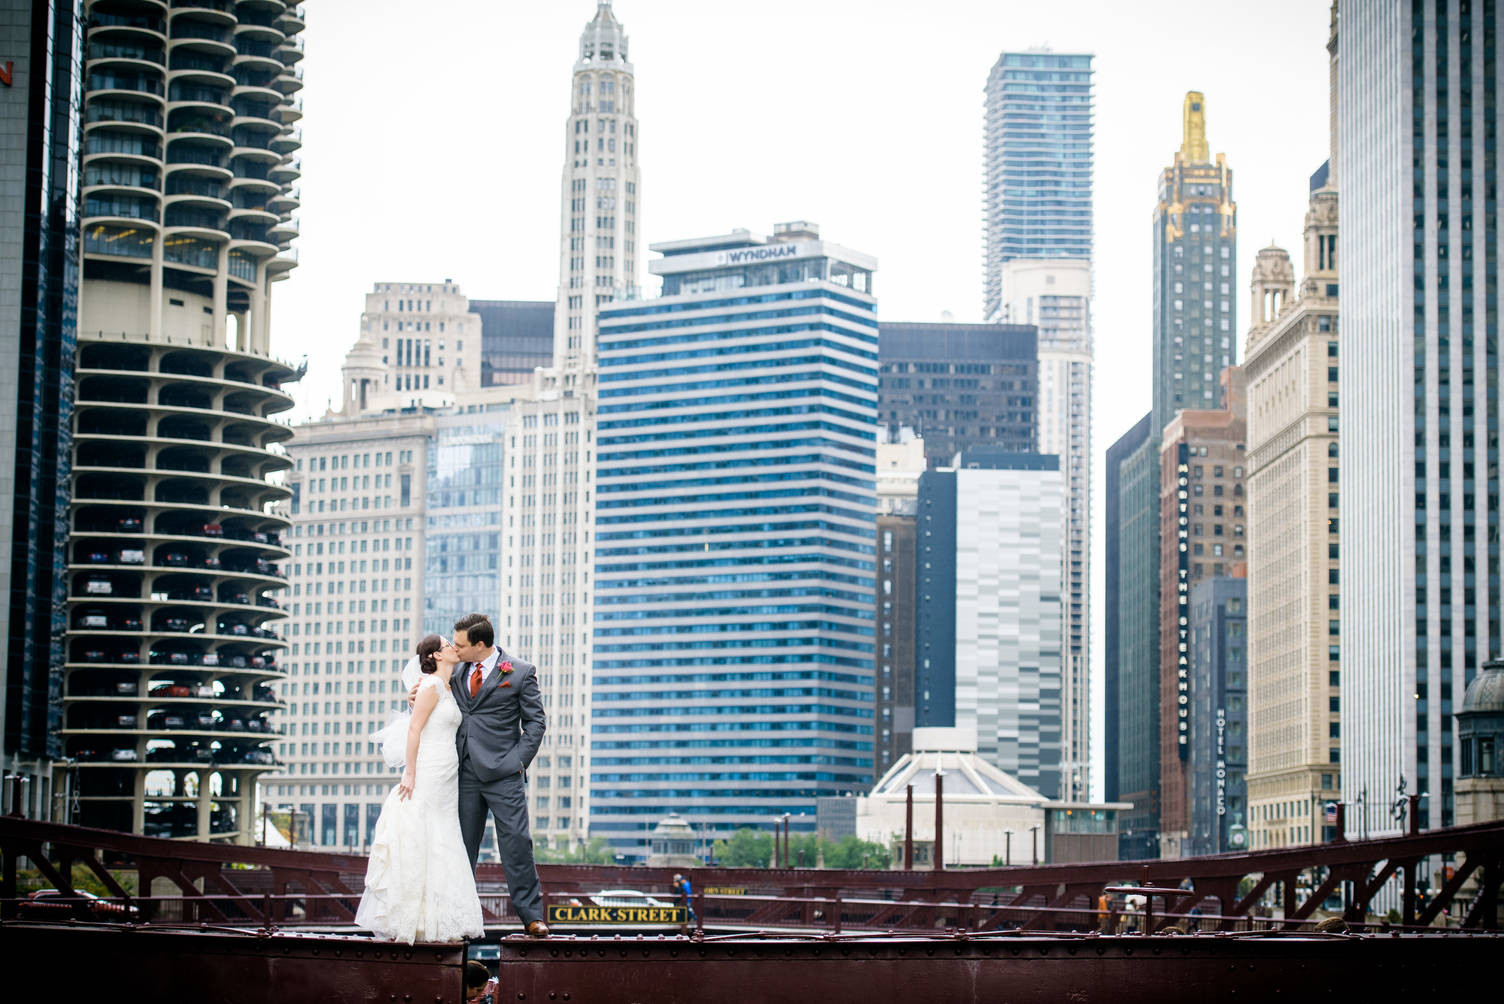 Wedding photo of bride and groom on a bridge over the Chicago river.